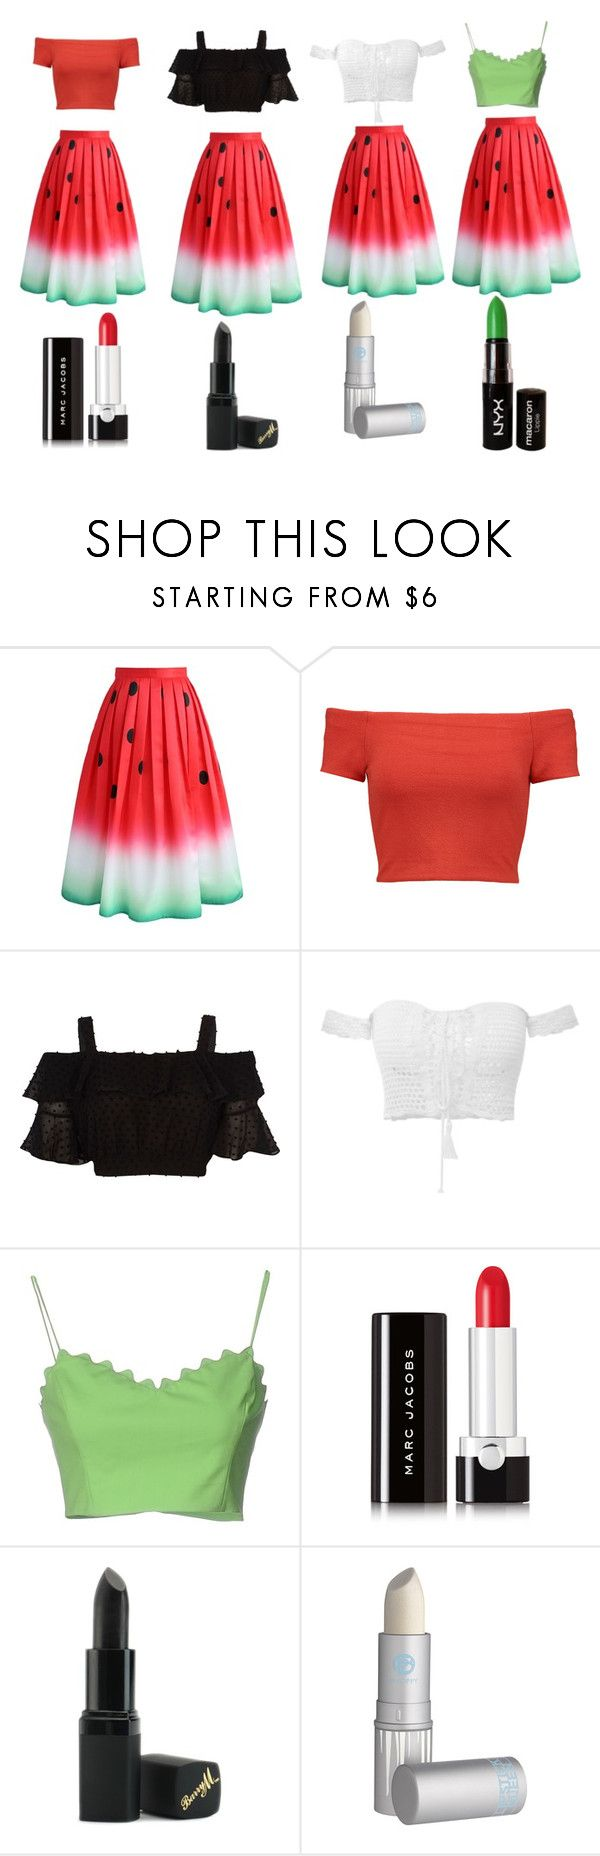 """Watermelon outfit  which one does it match better?"" by emilyg-5 ❤ liked on Polyvore featuring Chicwish, Alice + Olivia, Moschino Cheap & Chic, Marc Jacobs, Barry M, Lipstick Queen and NYX"